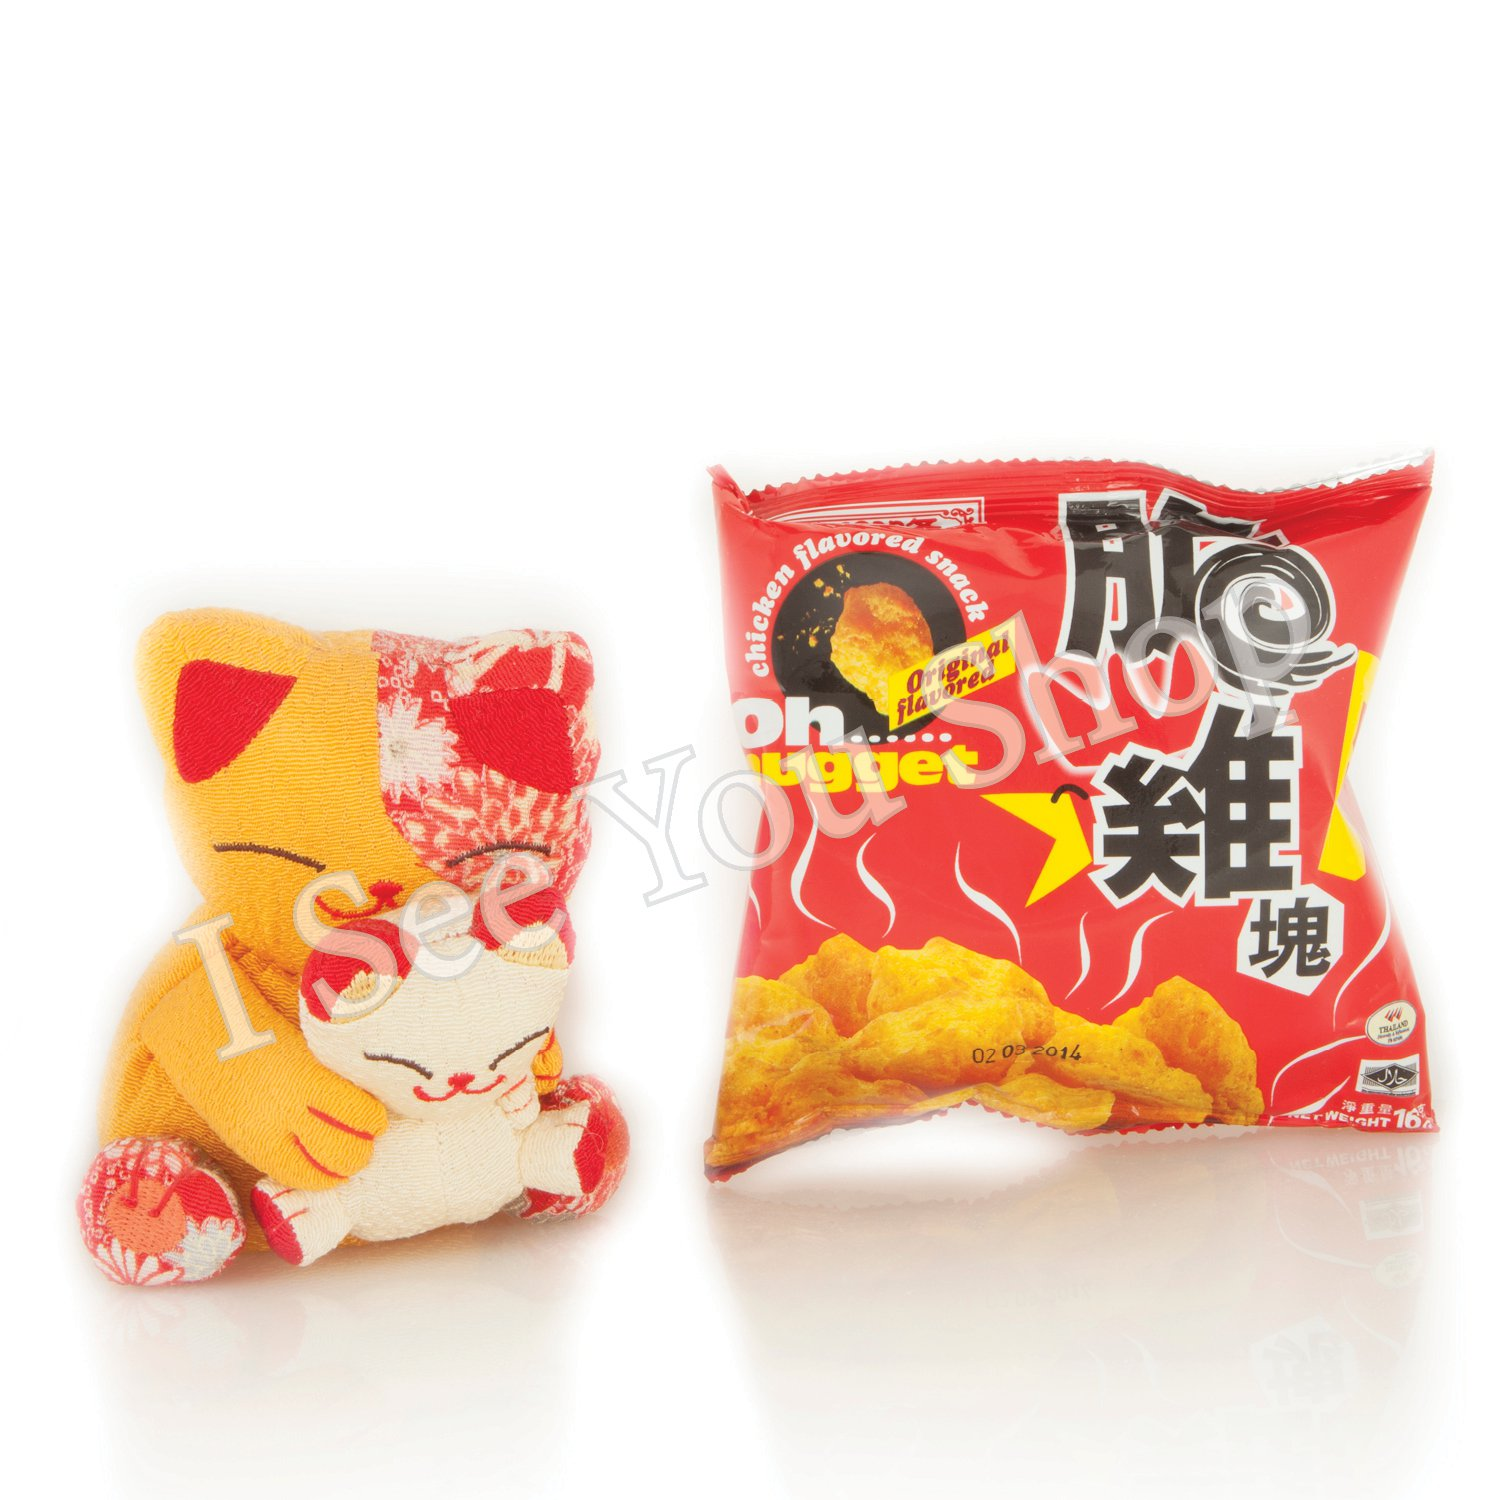 ��� ����� Sze Hing Loong Oh�Nugget Chicken Flavoured Snack 16g